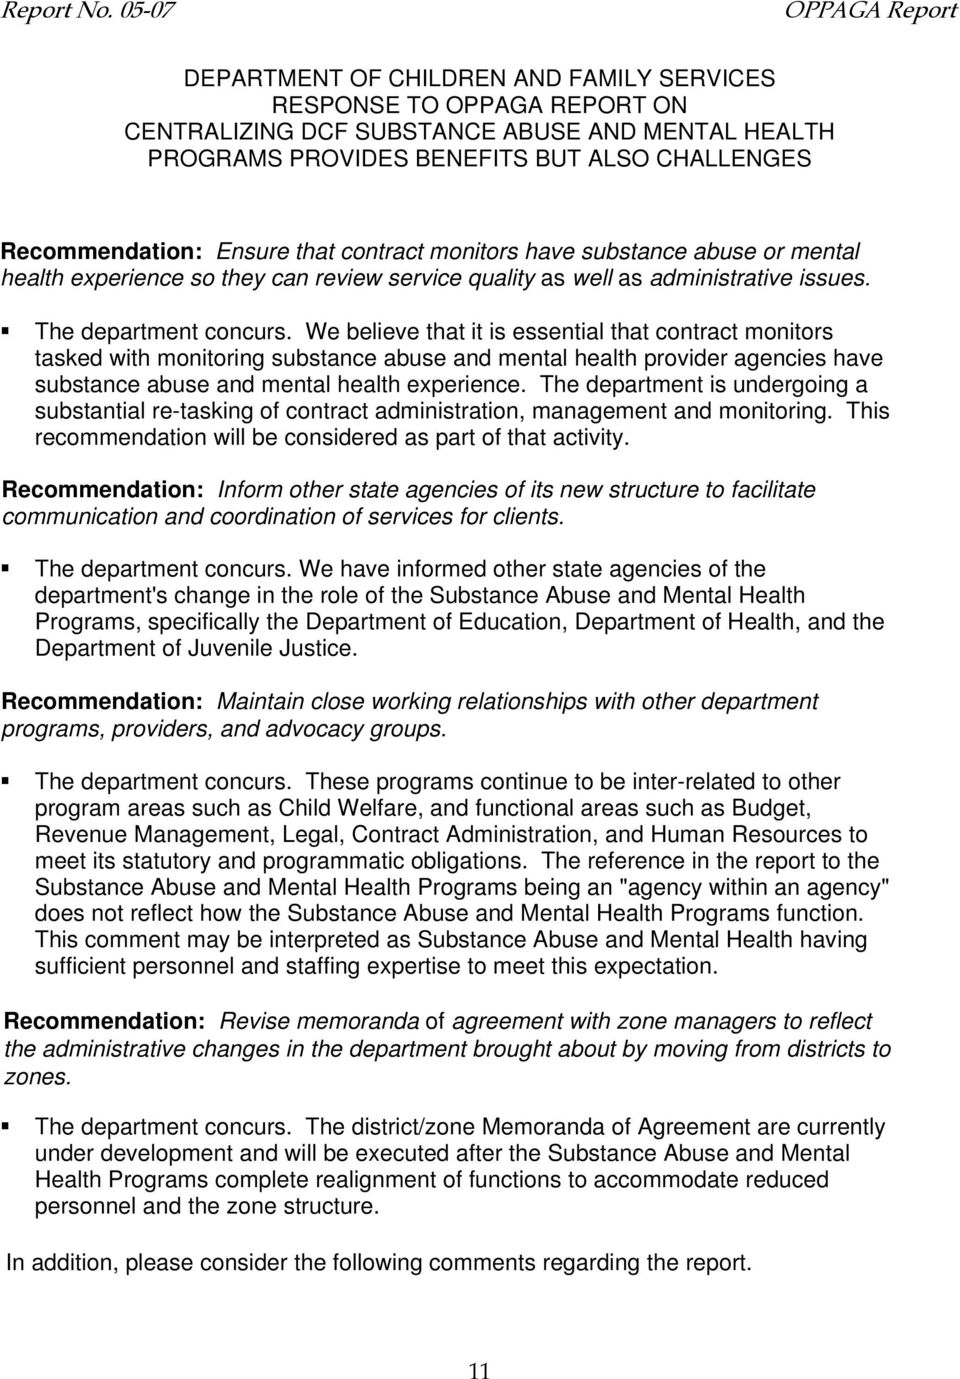 Recommendation: Ensure that contract monitors have substance abuse or mental health experience so they can review service quality as well as administrative issues. The department concurs.